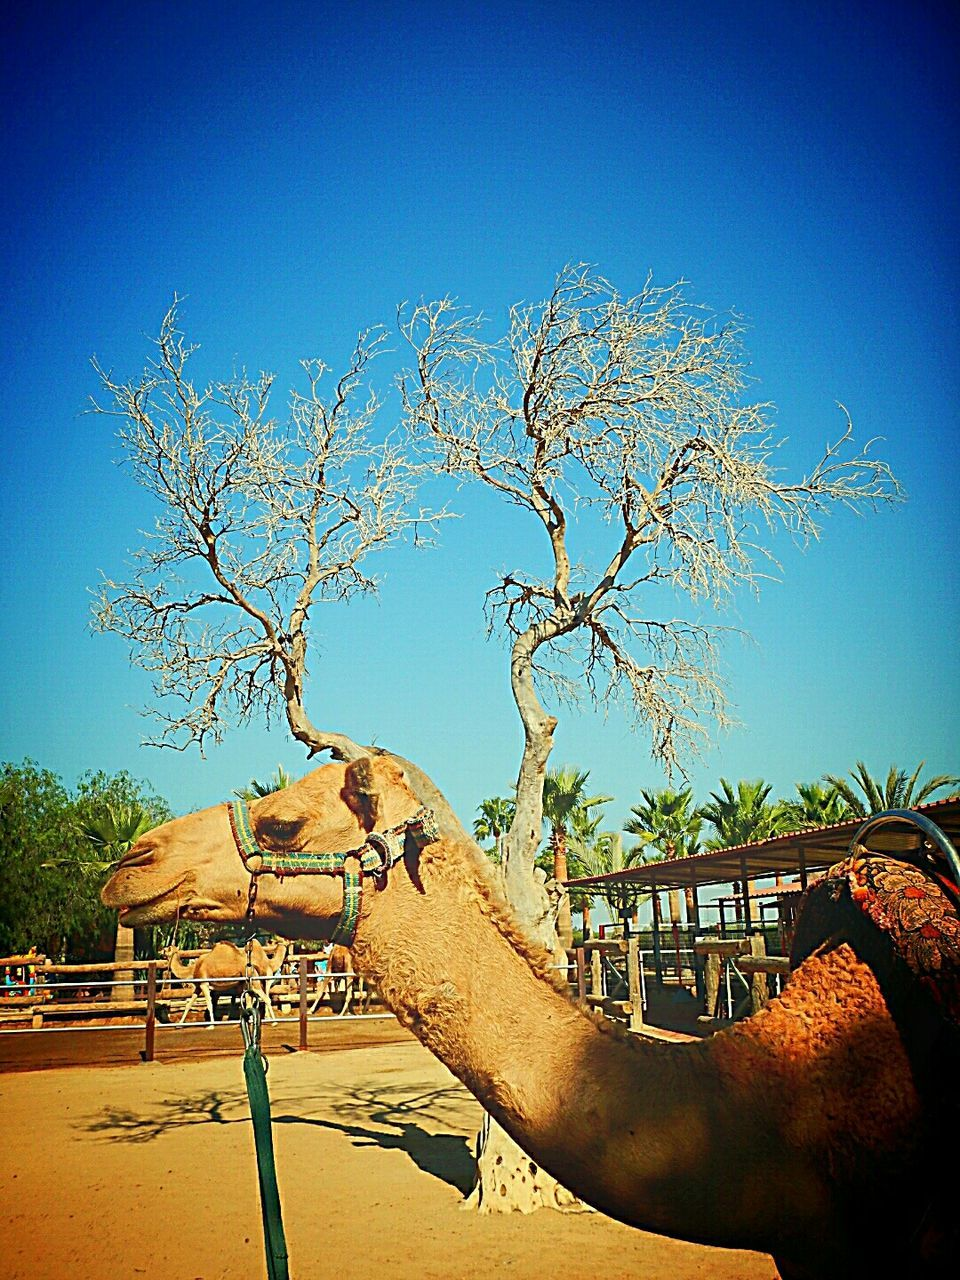 tree, clear sky, outdoors, day, blue, sunlight, animal themes, domestic animals, nature, no people, mammal, architecture, sky